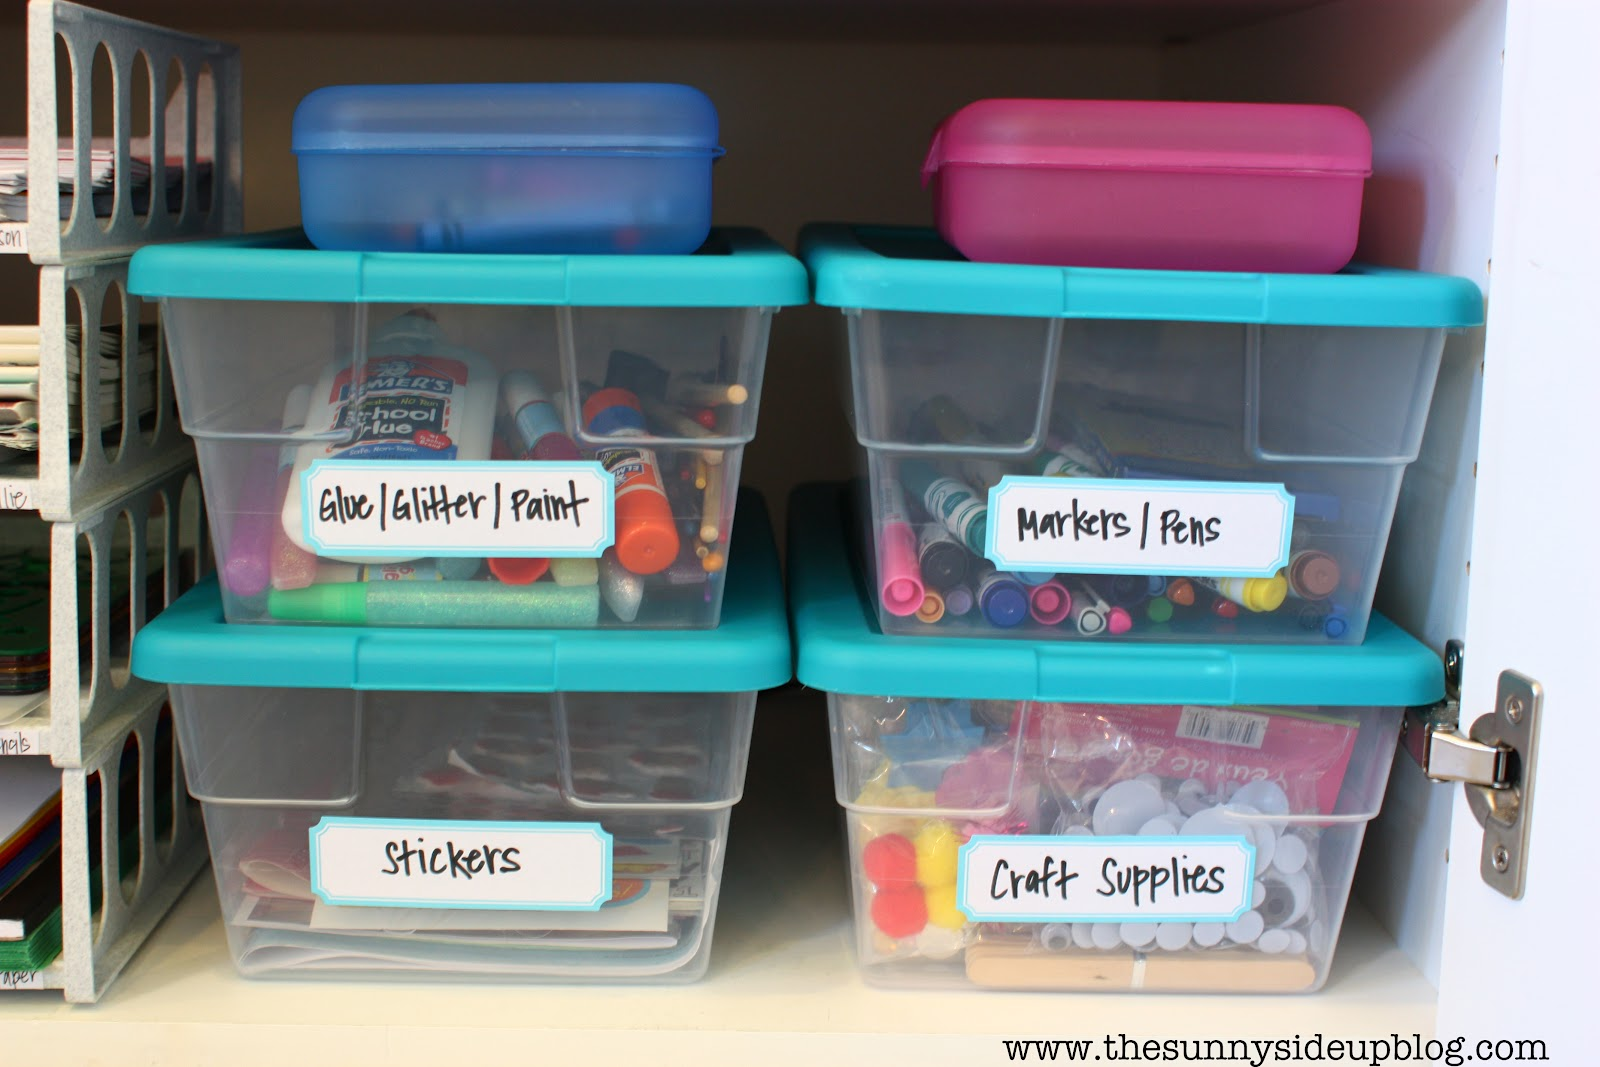 Craft supply storage containers - The Four Clear Containers Hold The Rest Of Our Craft Supplies Glue Glitter Paint Markers Pens Stickers And The Craft Supply Bin Is Full Of Random